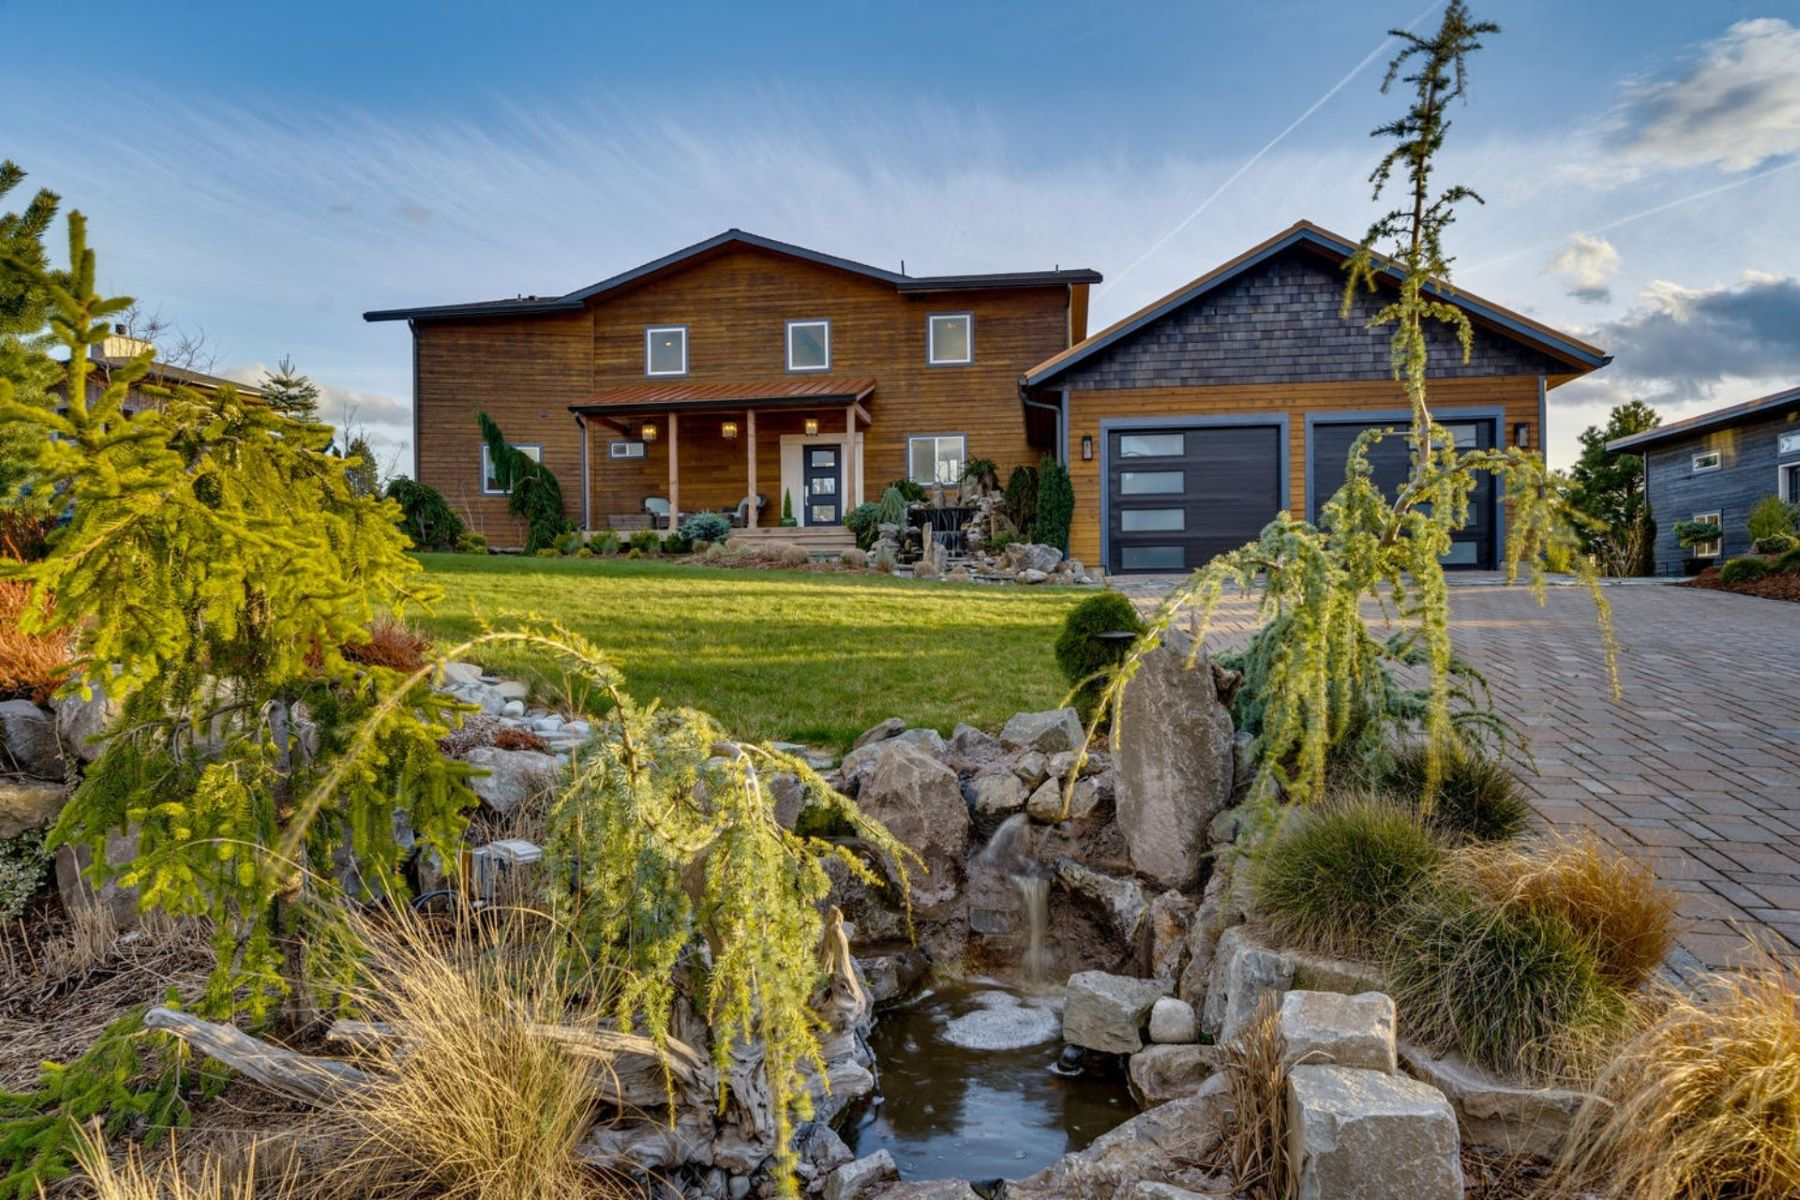 Other Residential Homes for Sale at 485 NW SPRING ST White Salmon, WA 98672 485 NW SPRING ST White Salmon, Washington 98672 United States